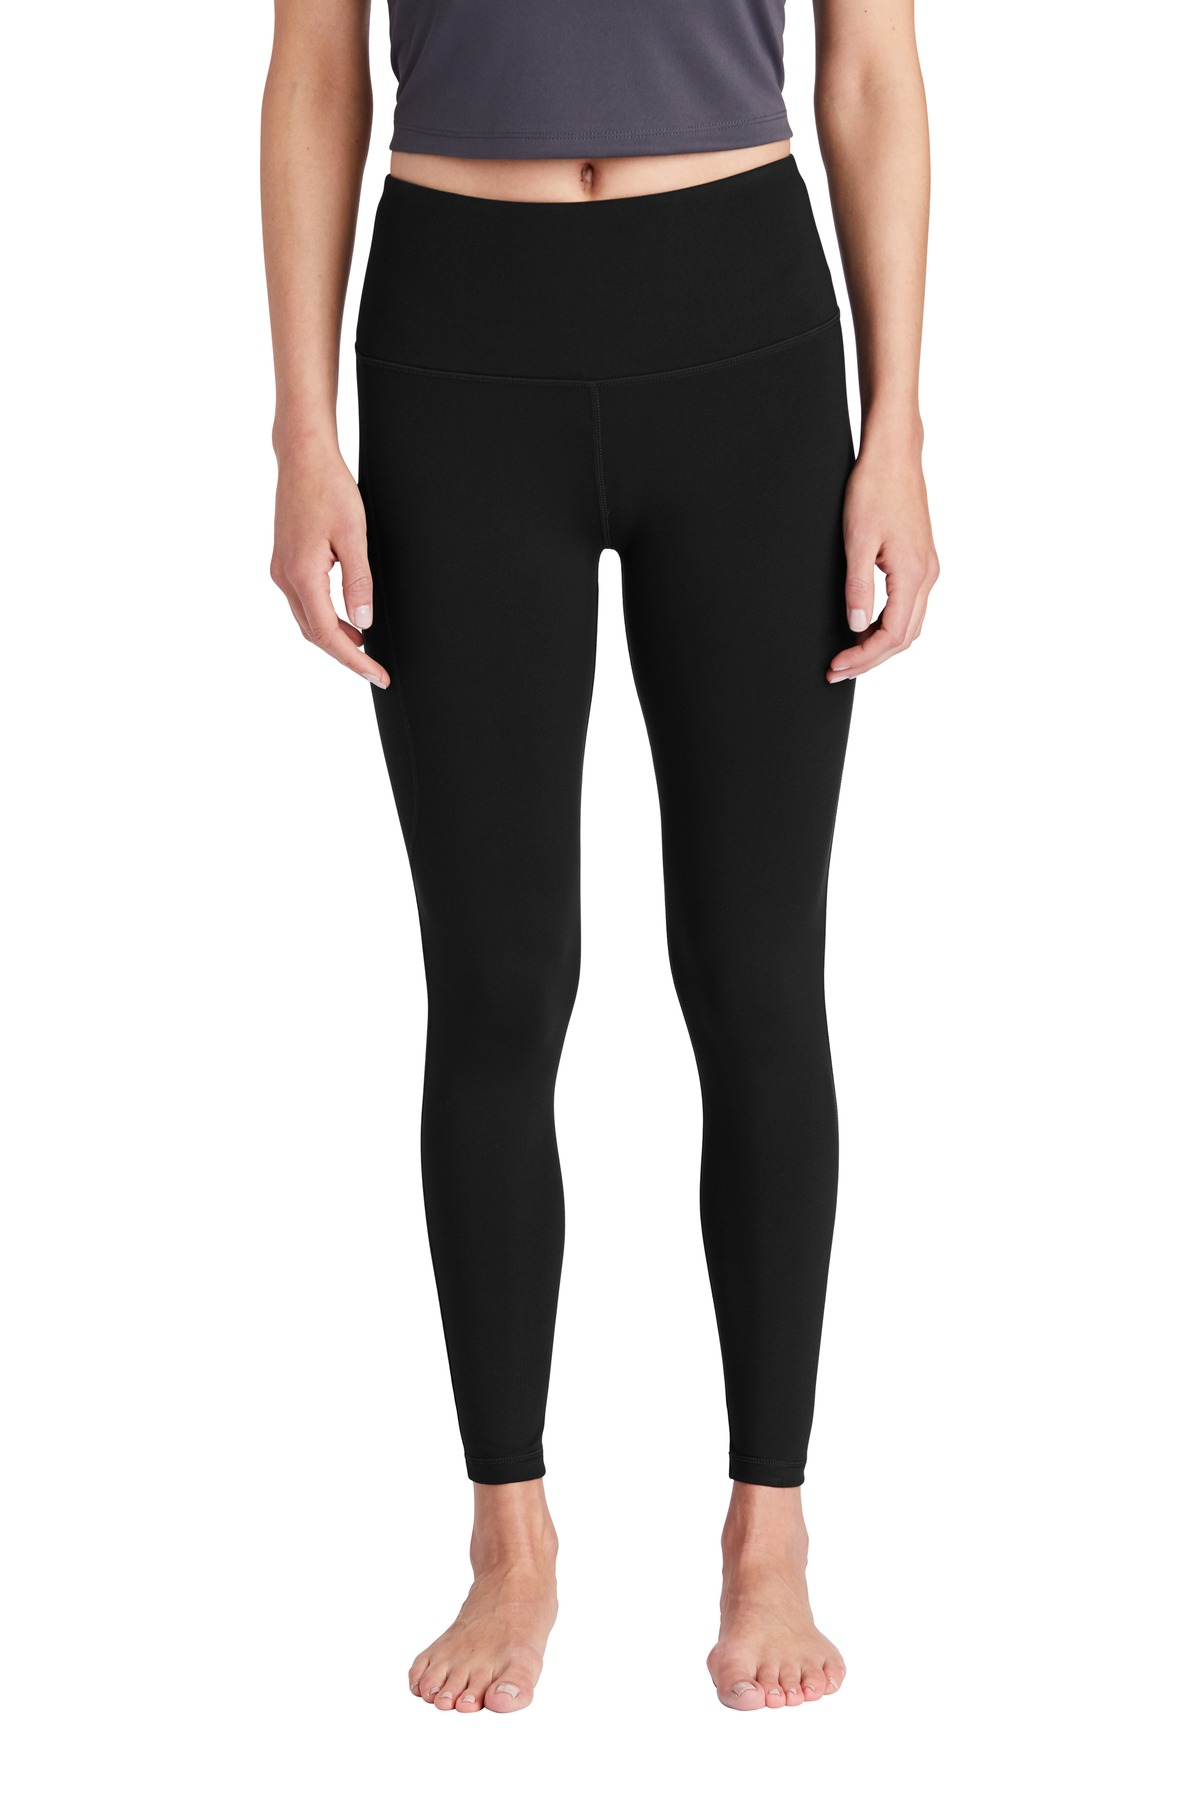 Sport-Tek  ®  Ladies High Rise 7/8 Legging LPST891 - Black